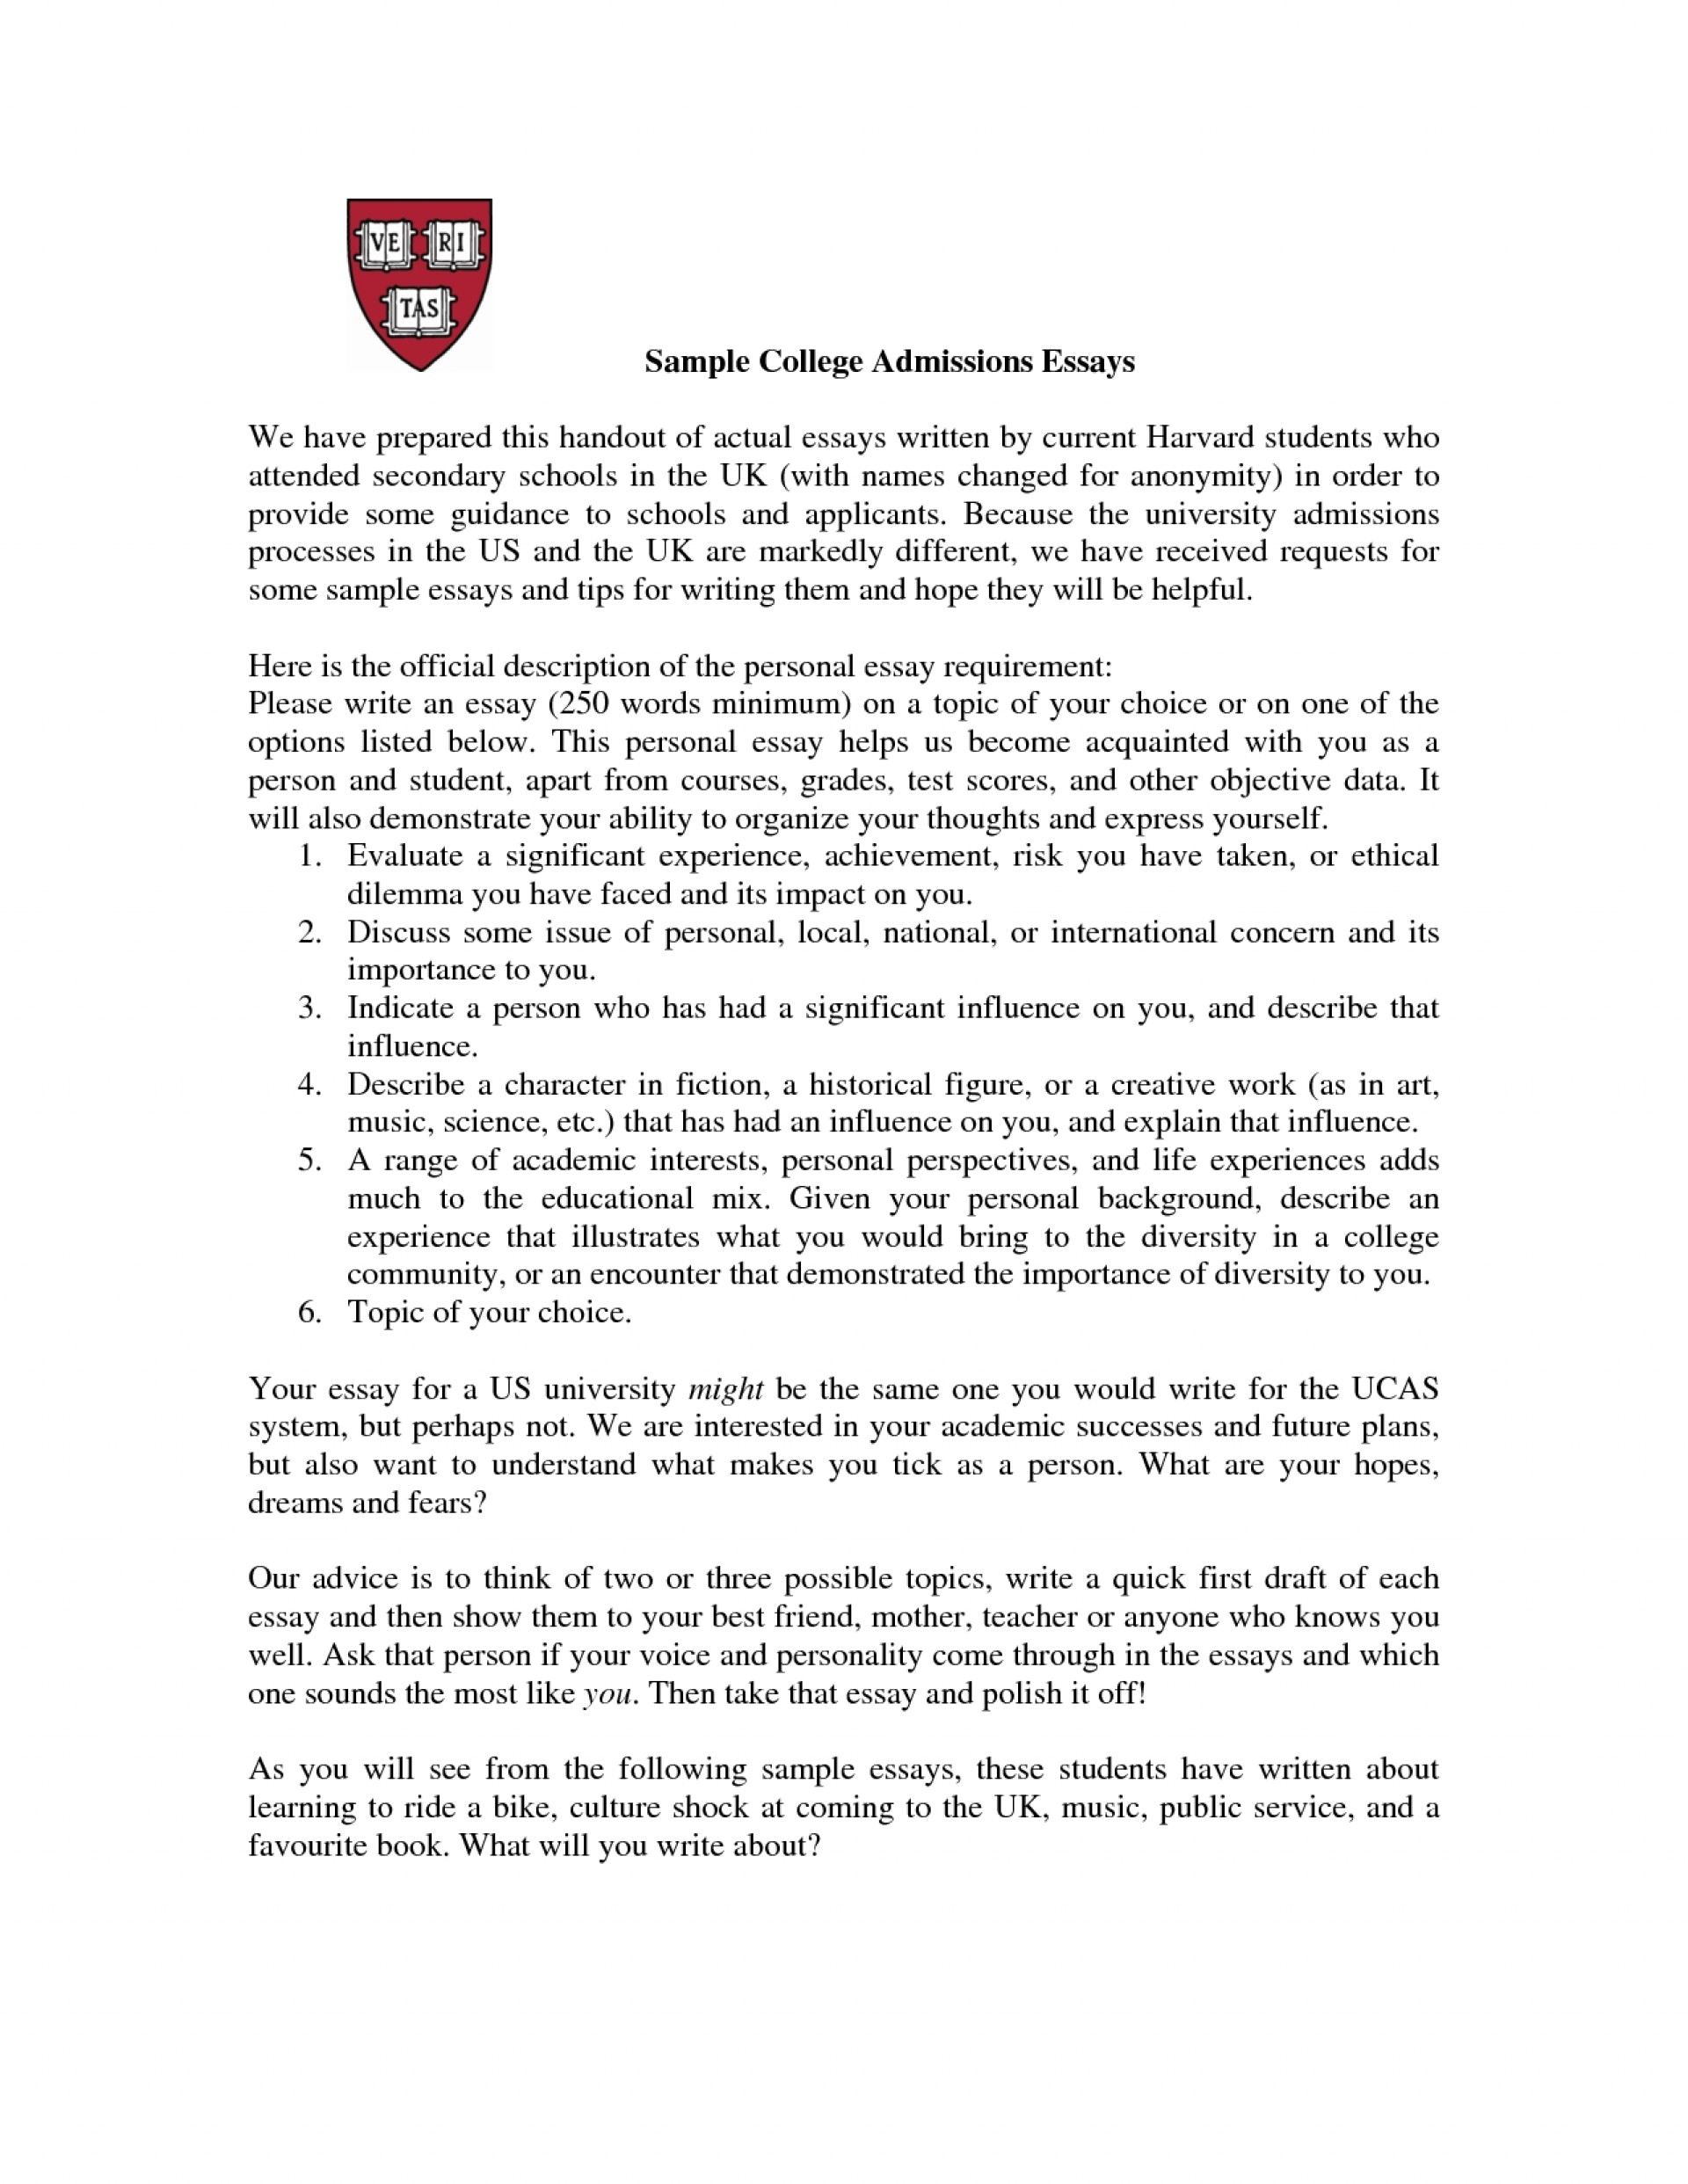 013 Dpy4cpaqnd Essay Example Common App Best Essays Samples Option 1 Prompt 2016 2017 1920